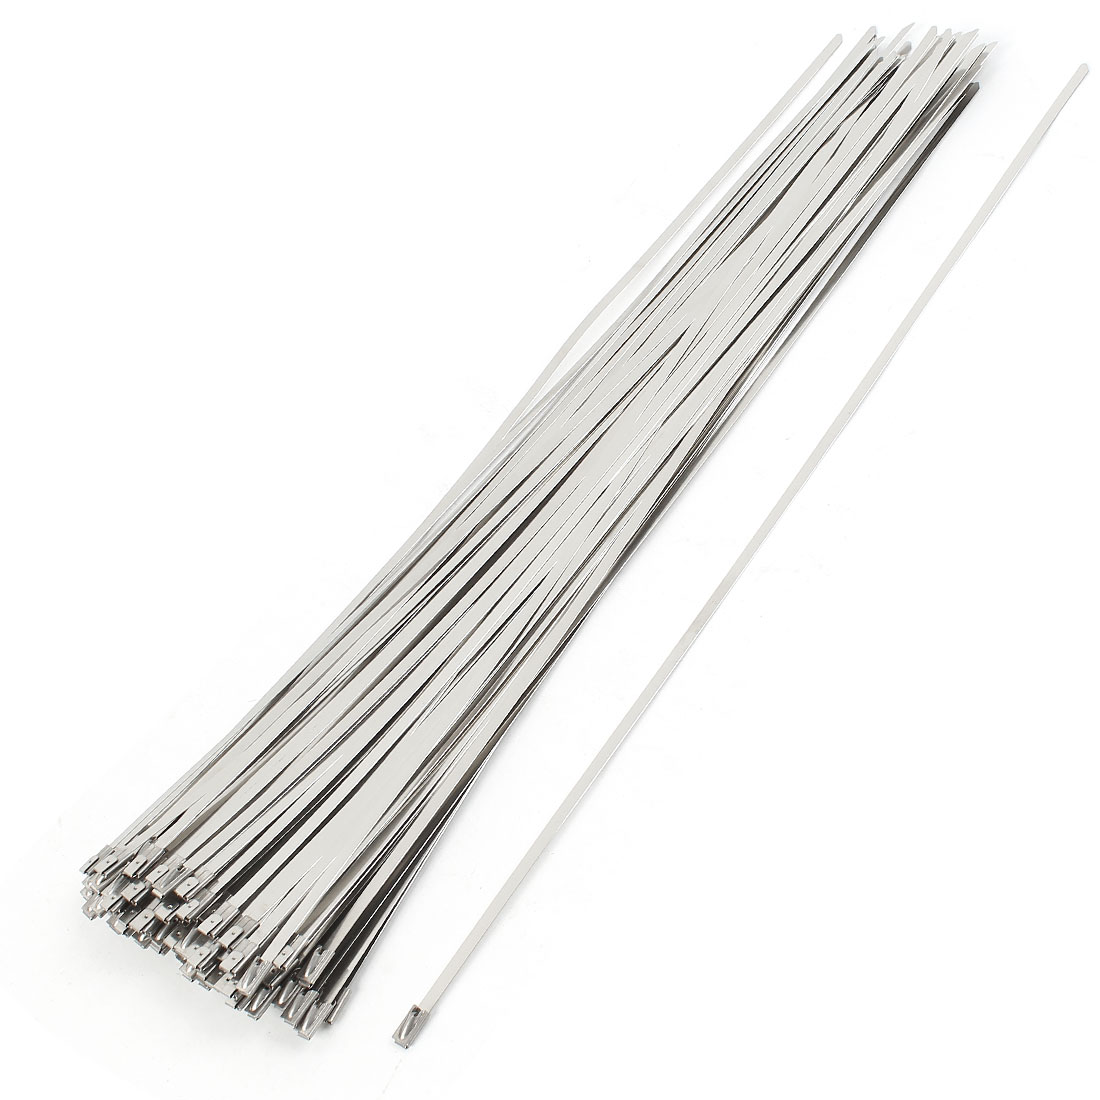 100Pcs Stainless Steel Coated Zip Cable Tie 400x4.6mm for Pipe Hose